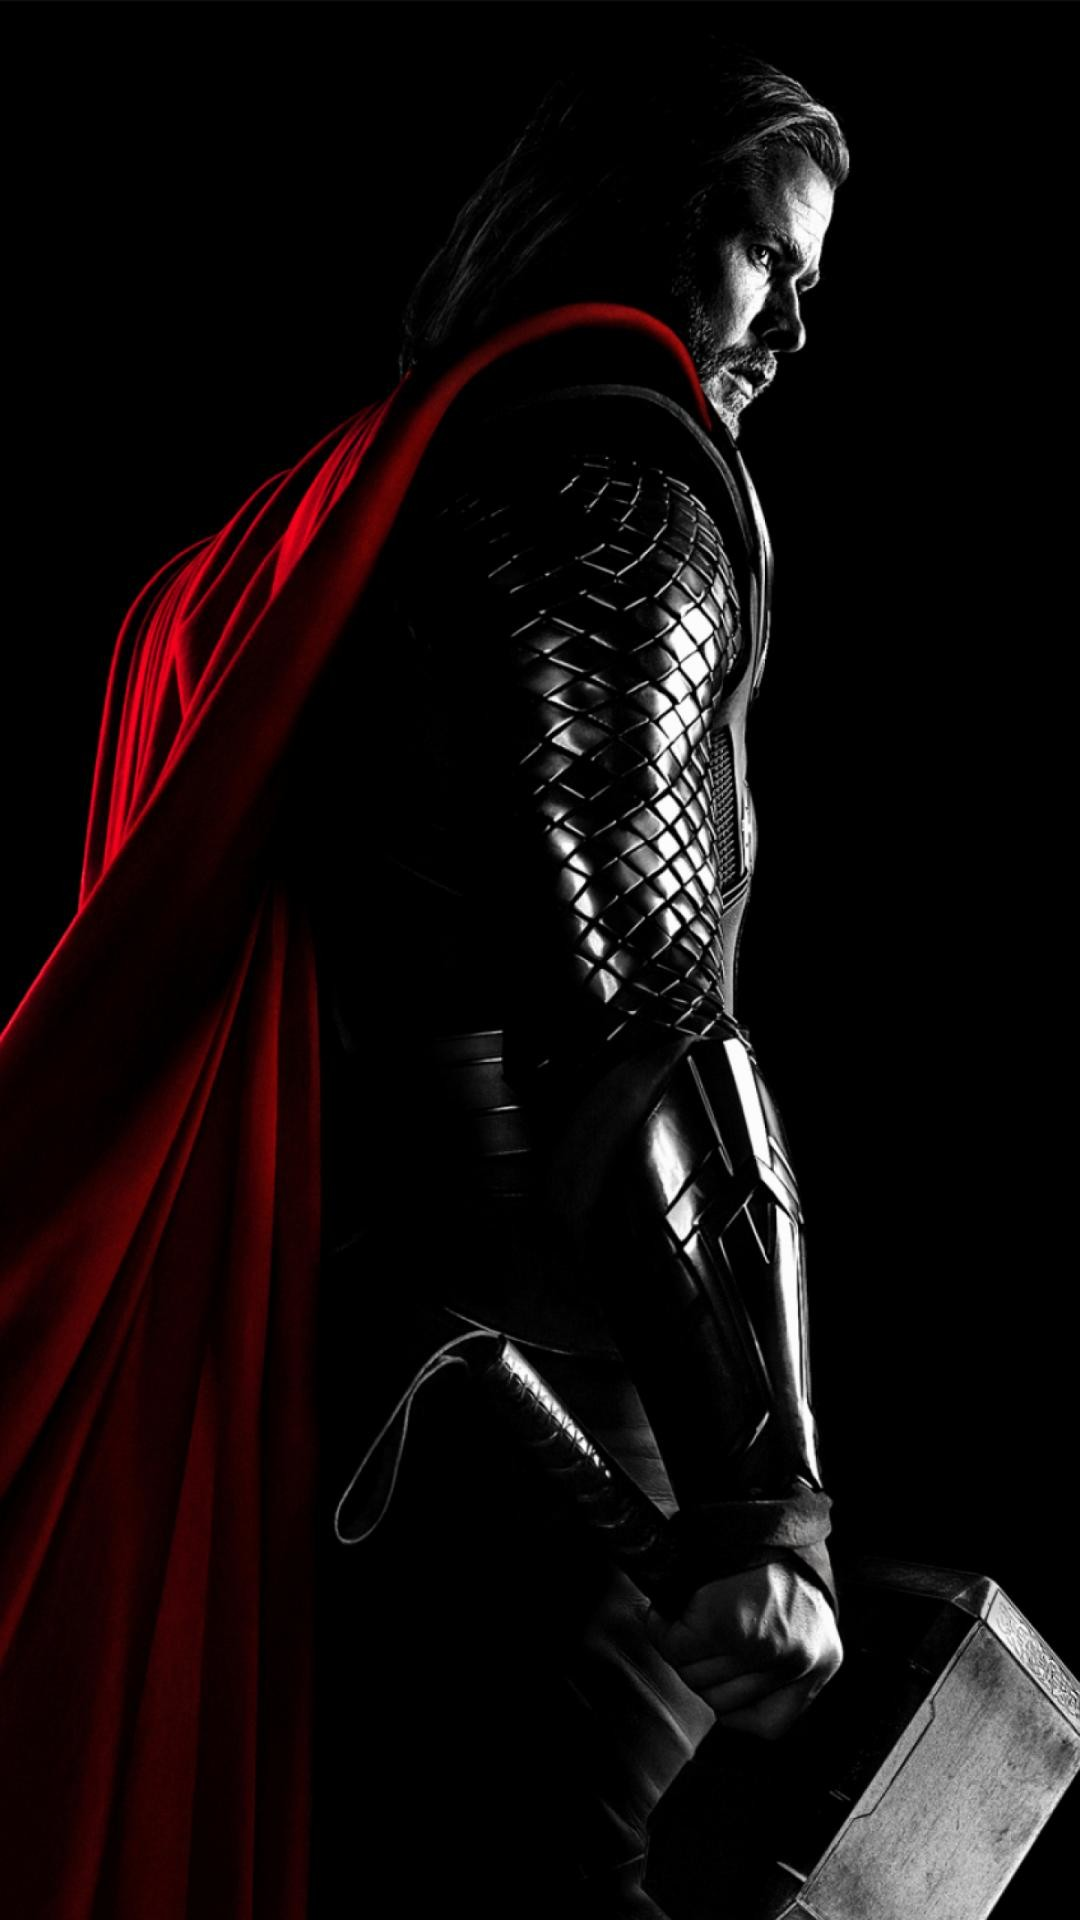 wallpaper.wiki-Free-Download-Marvel-Image-for-Iphone-